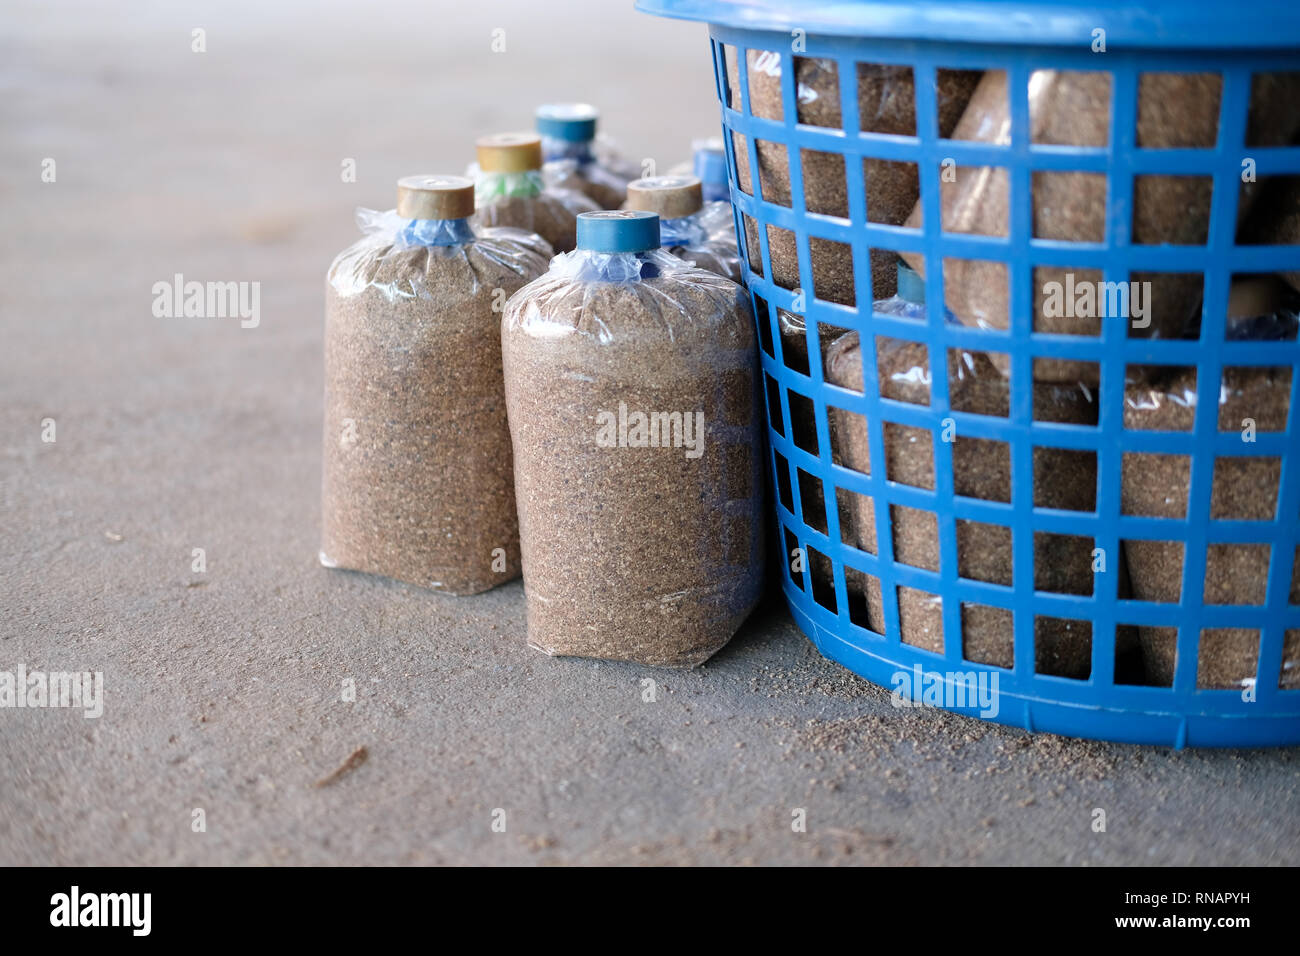 artificial substrate in bag for growing edible mushroom in